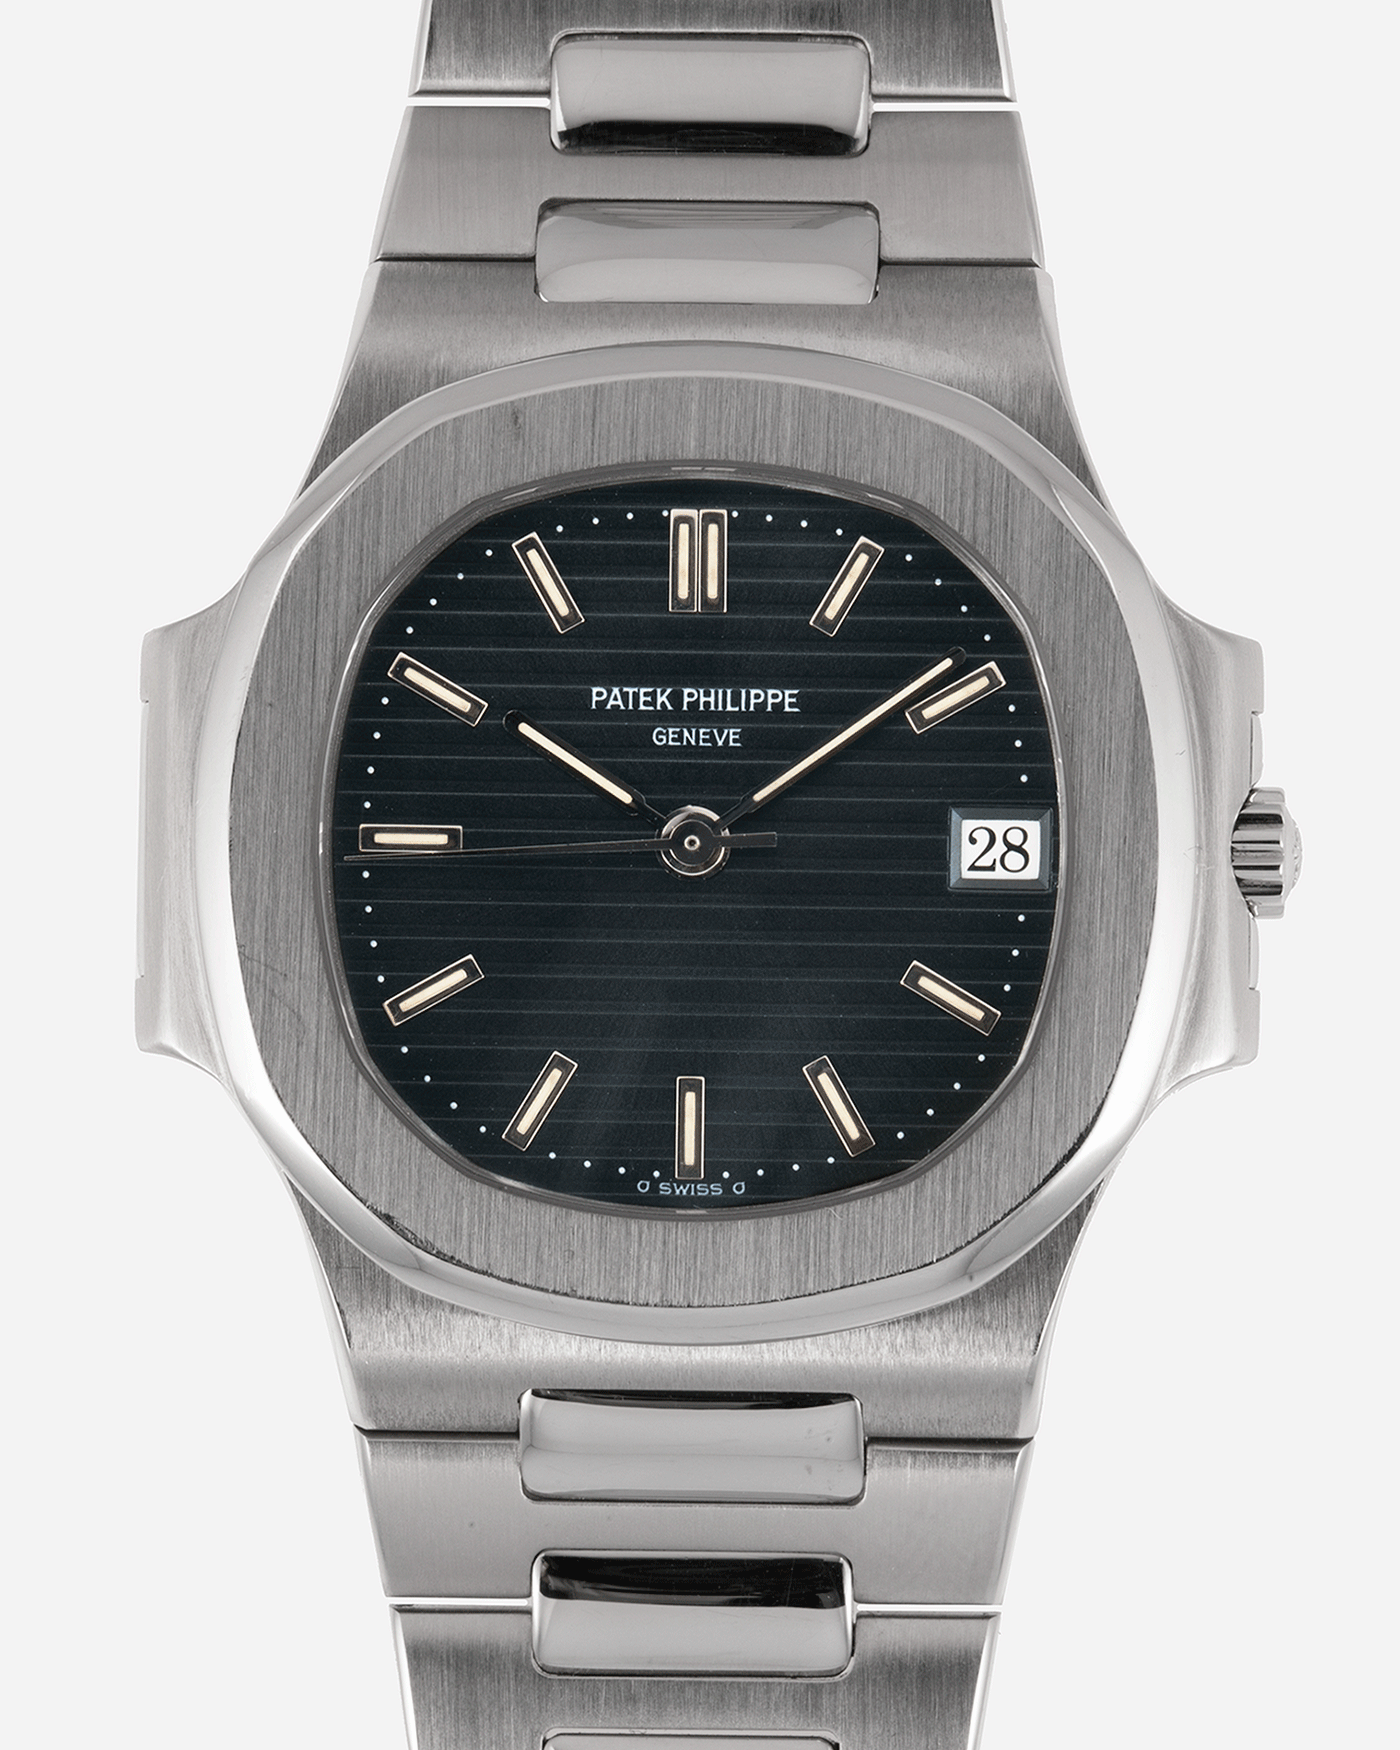 Brand: Patek Philippe Year: 1990's Model: Nautilus Reference Number: 3800 Material: Stainless Steel  Movement: Calibre 335 SC Case Diameter: 38mm Bracelet: Patek Philippe Integrated Stainless Steel Bracelet